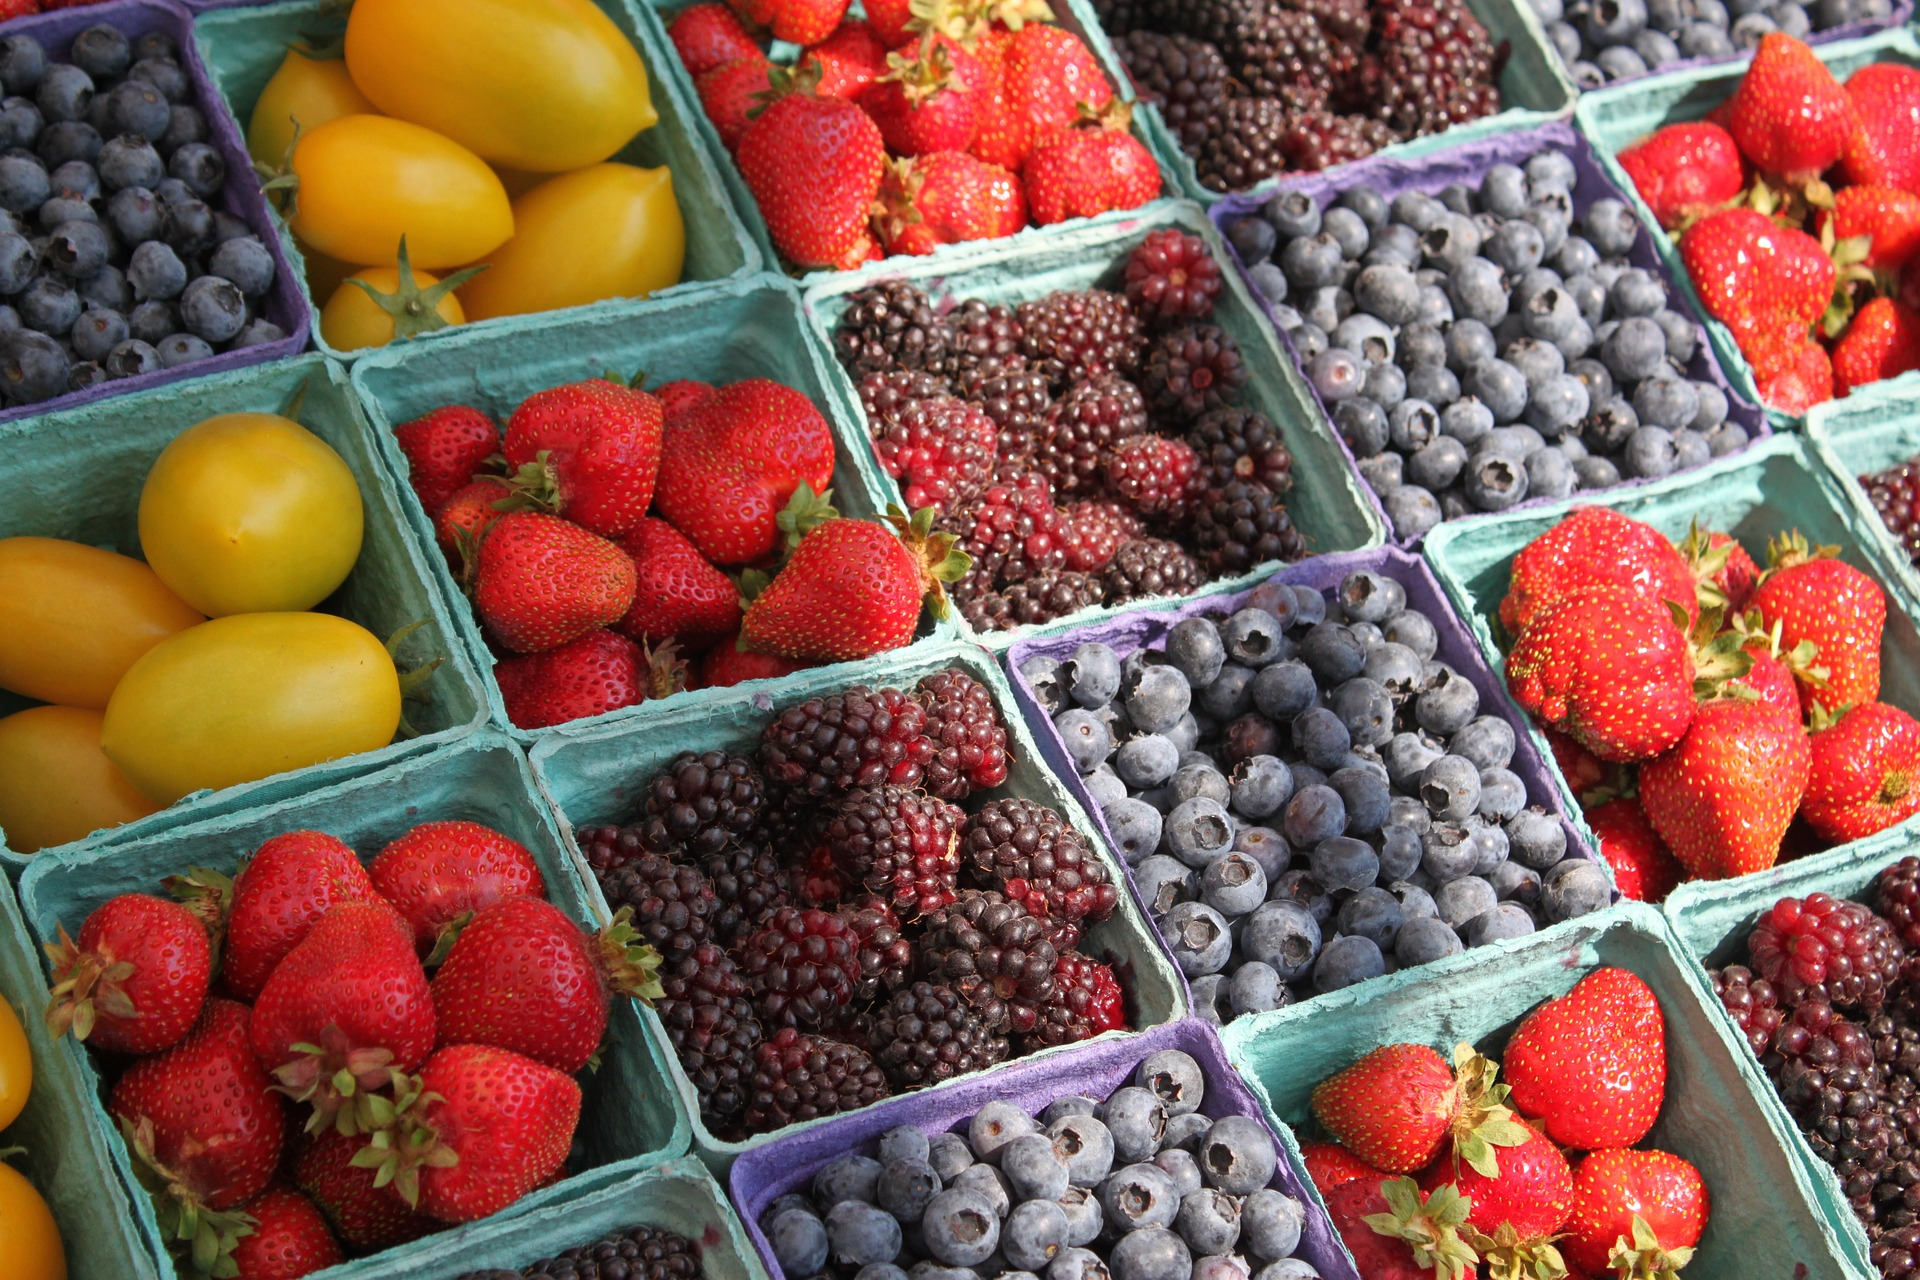 fresh produce: berries, blueberries, strawberries,blackberries